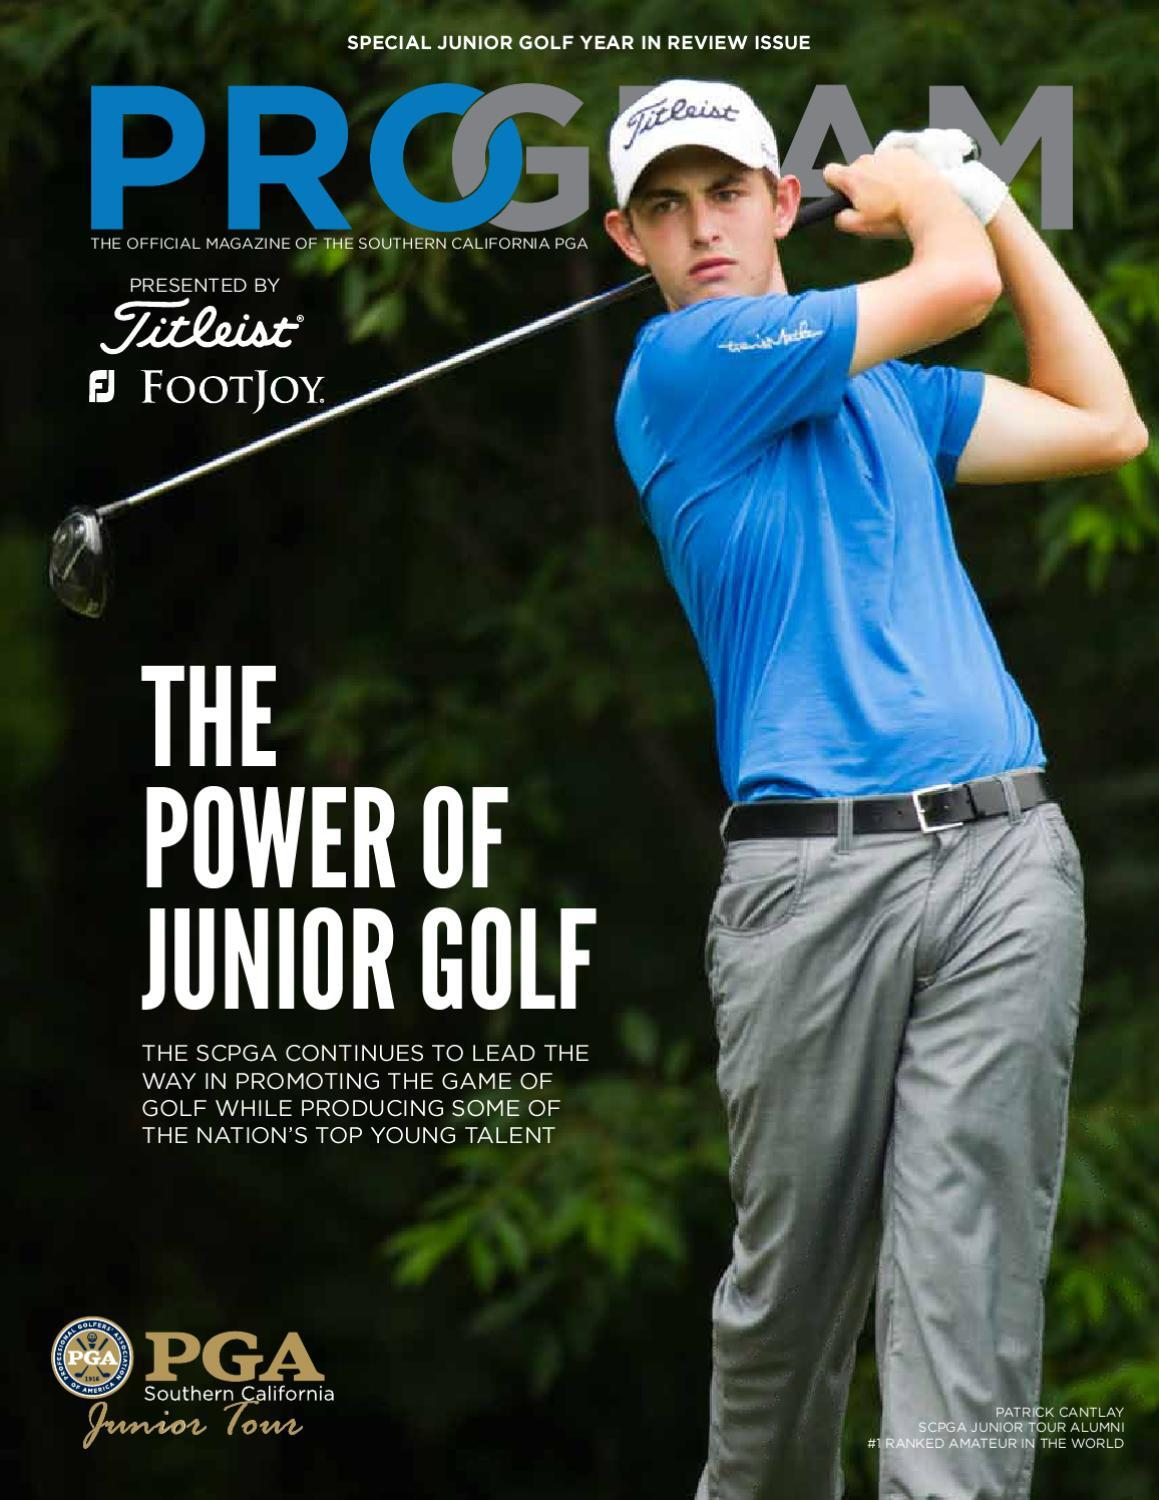 Patrick Cantlay Magazine Cover